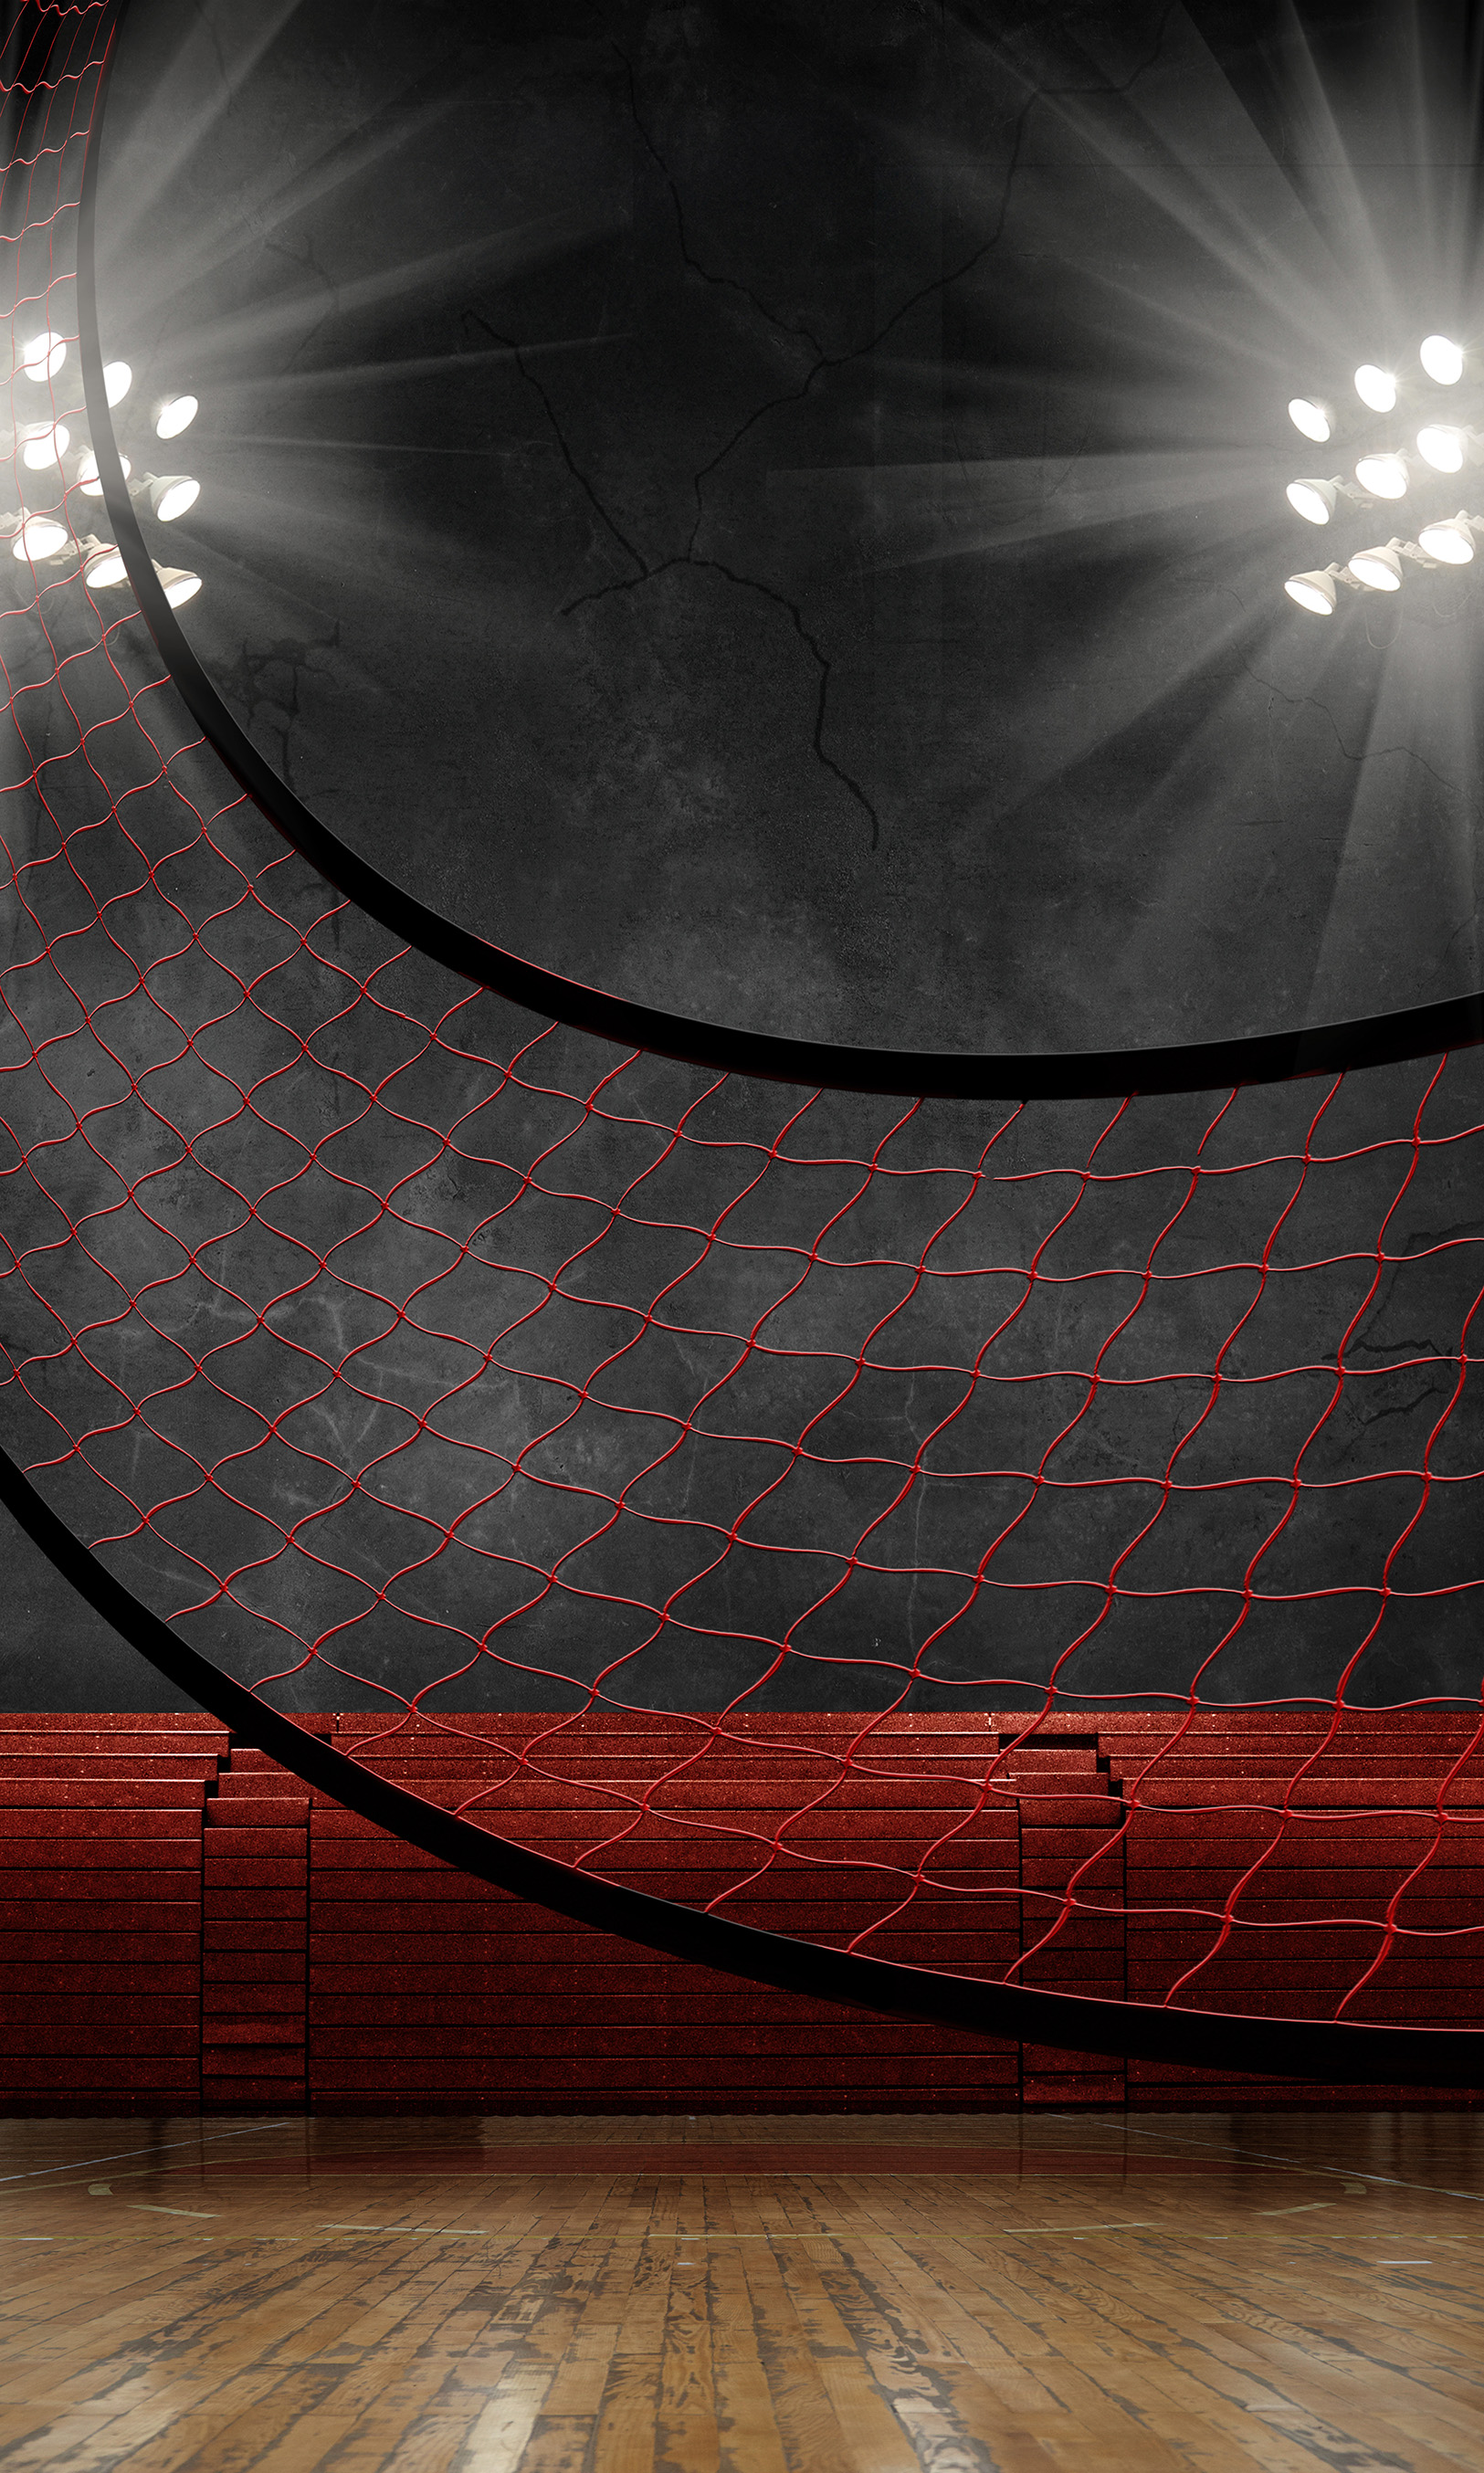 sturdavinci art tools volleyball net swoosh photoshop